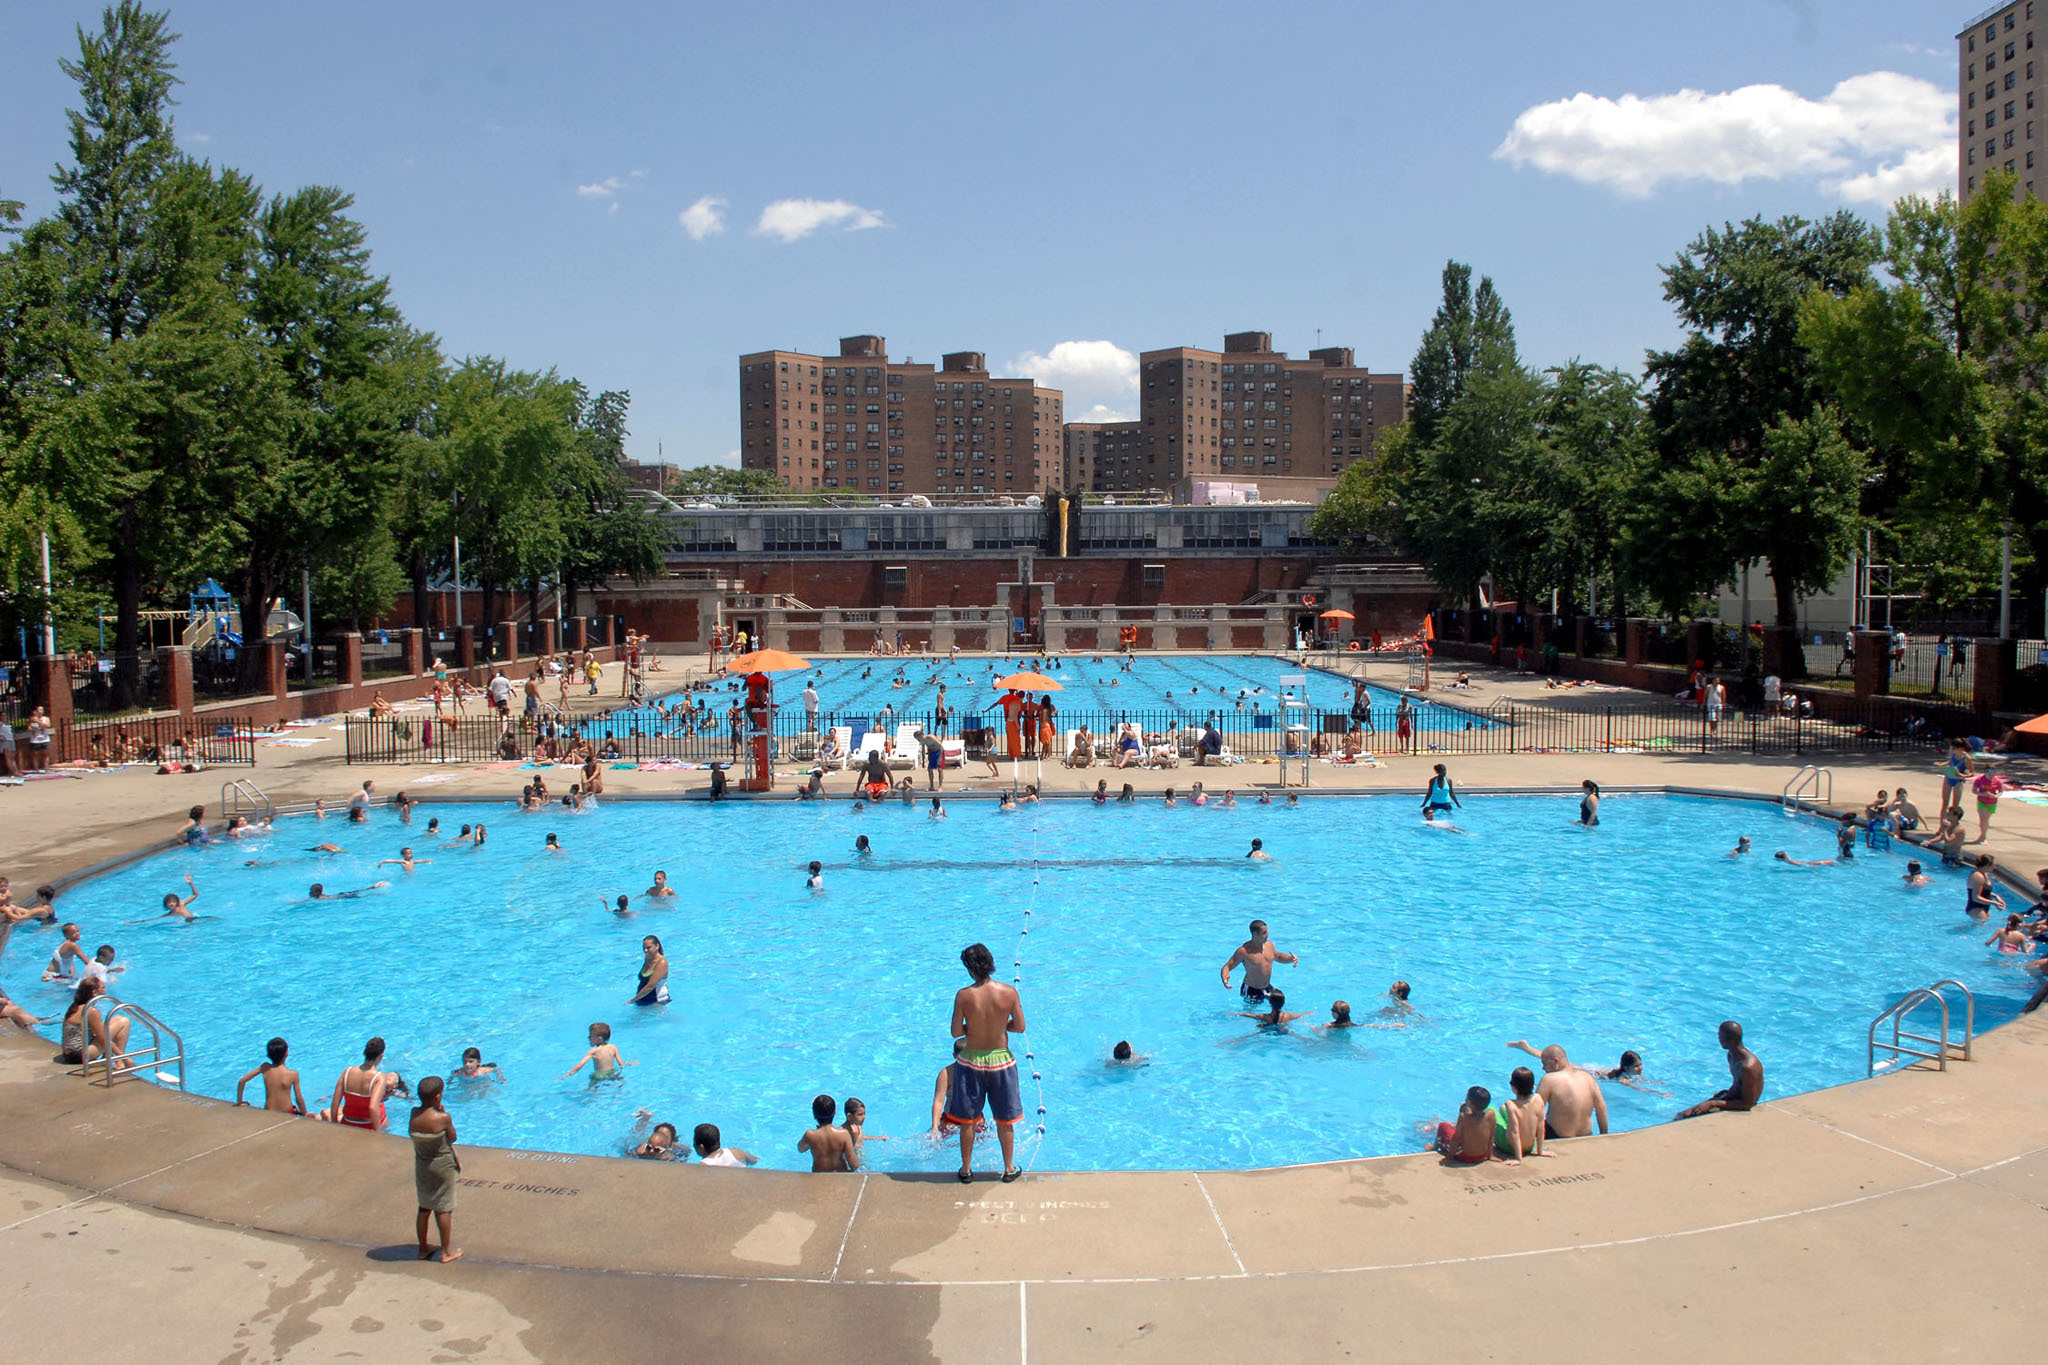 12 of the best public pools nyc has for swimming in summer for Best swimming pools